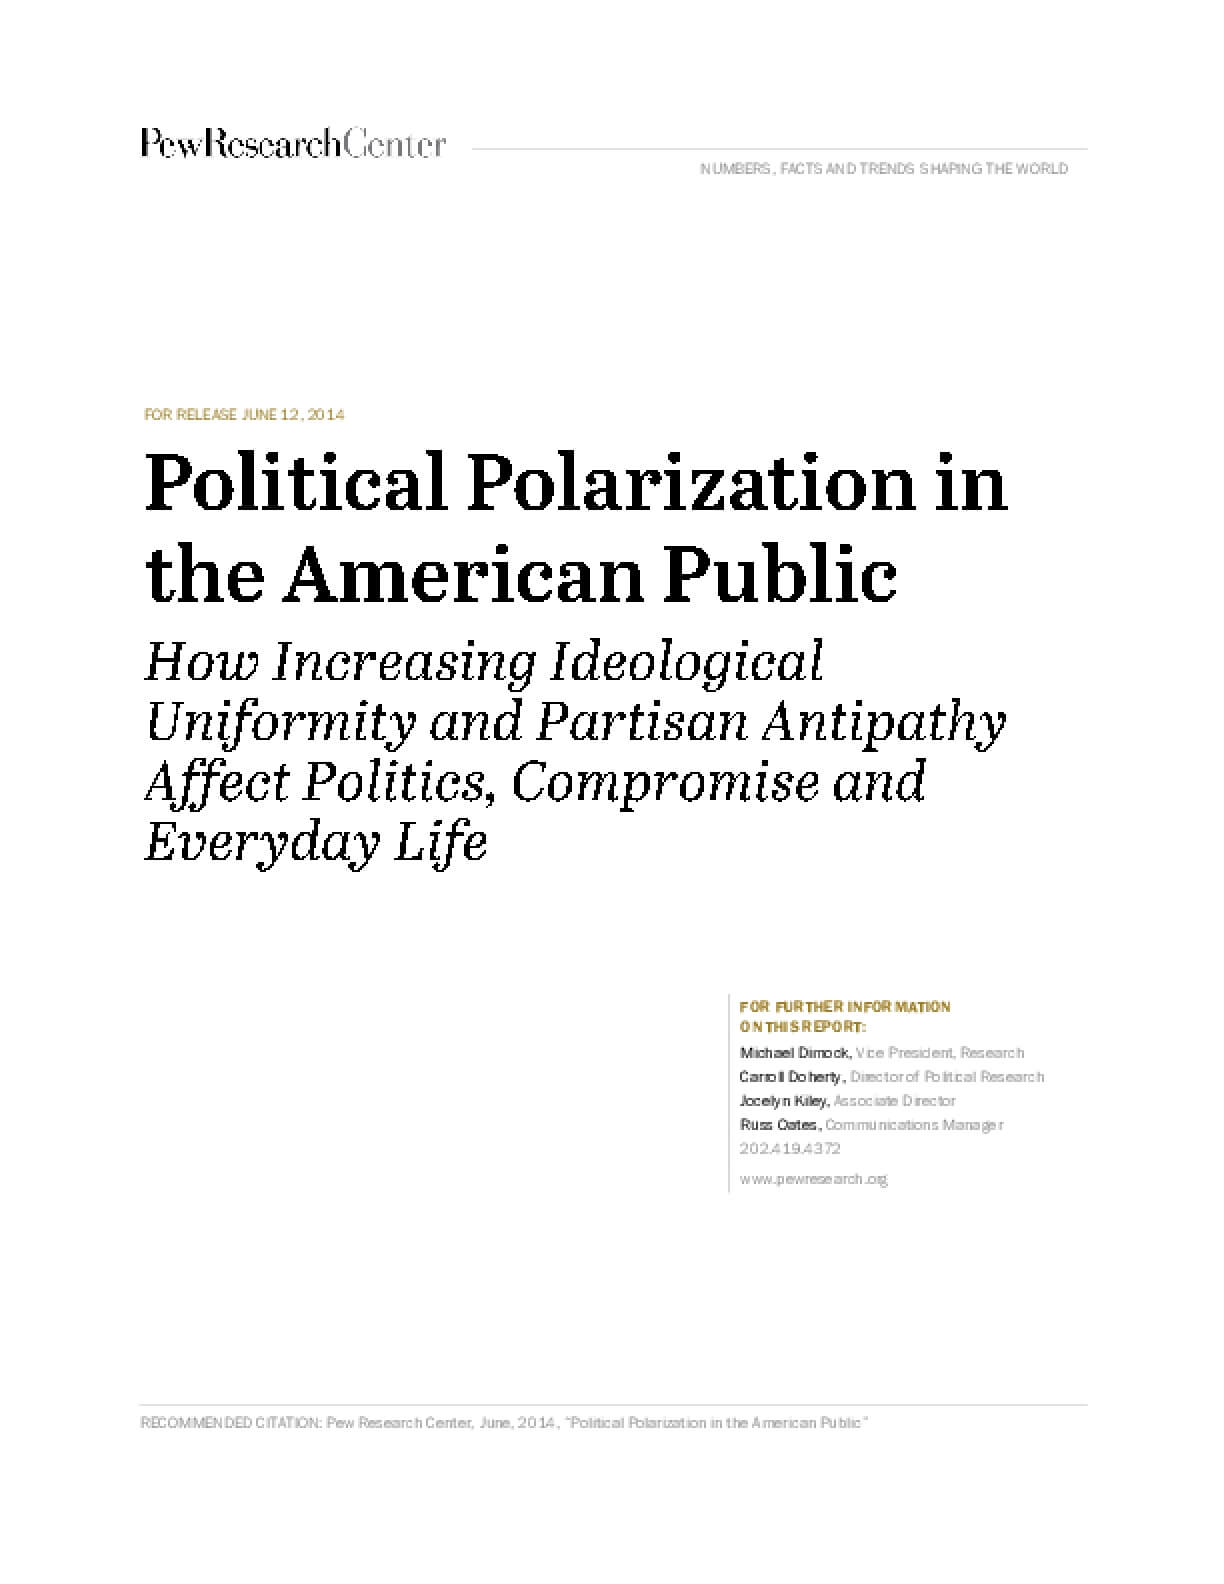 Political Polarization in the American Public: How Increasing Ideological Uniformity and Partisan Antipathy Affect Politics, Compromise and Everyday Life